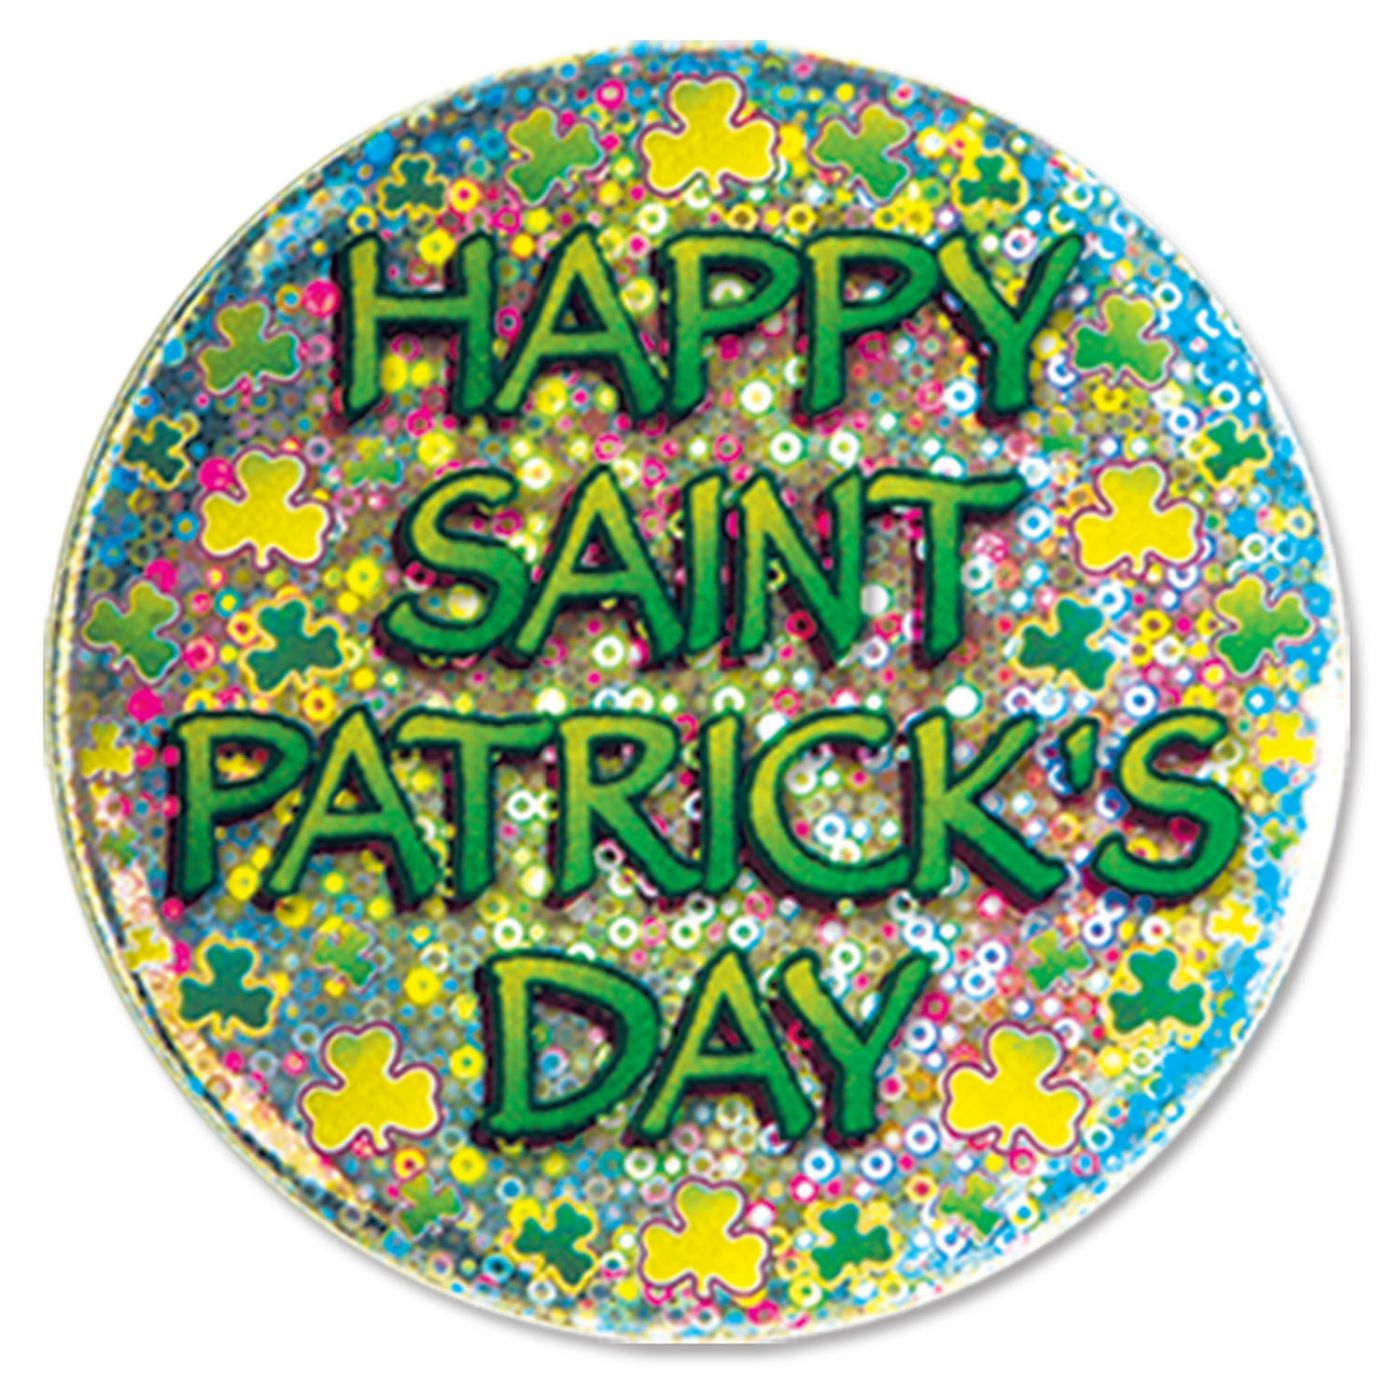 Happy St Patrick's Day Button image